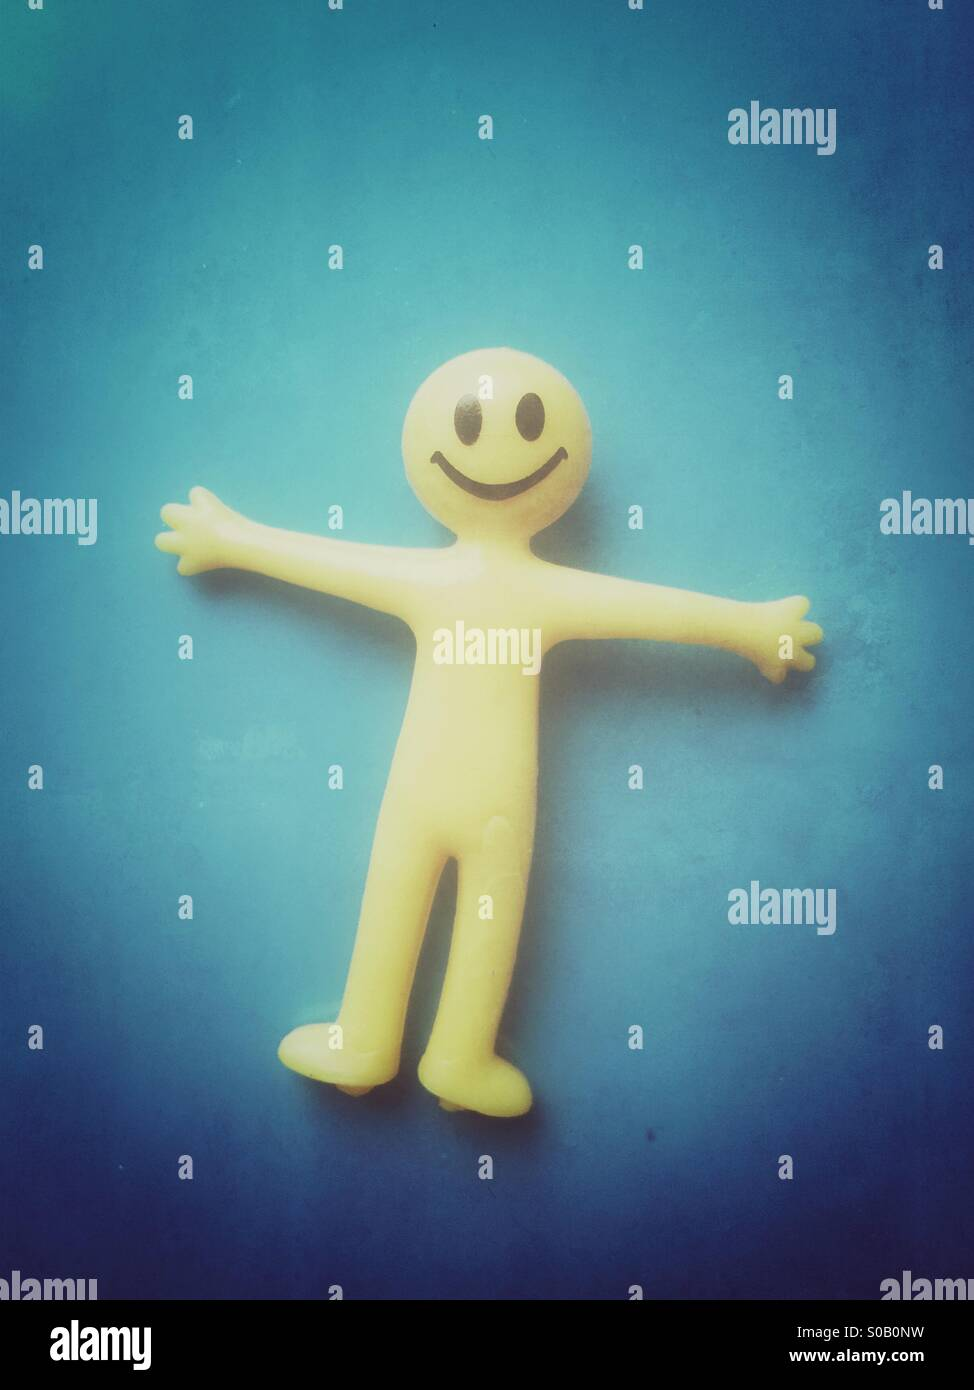 Smiley face rubber toy - Stock Image